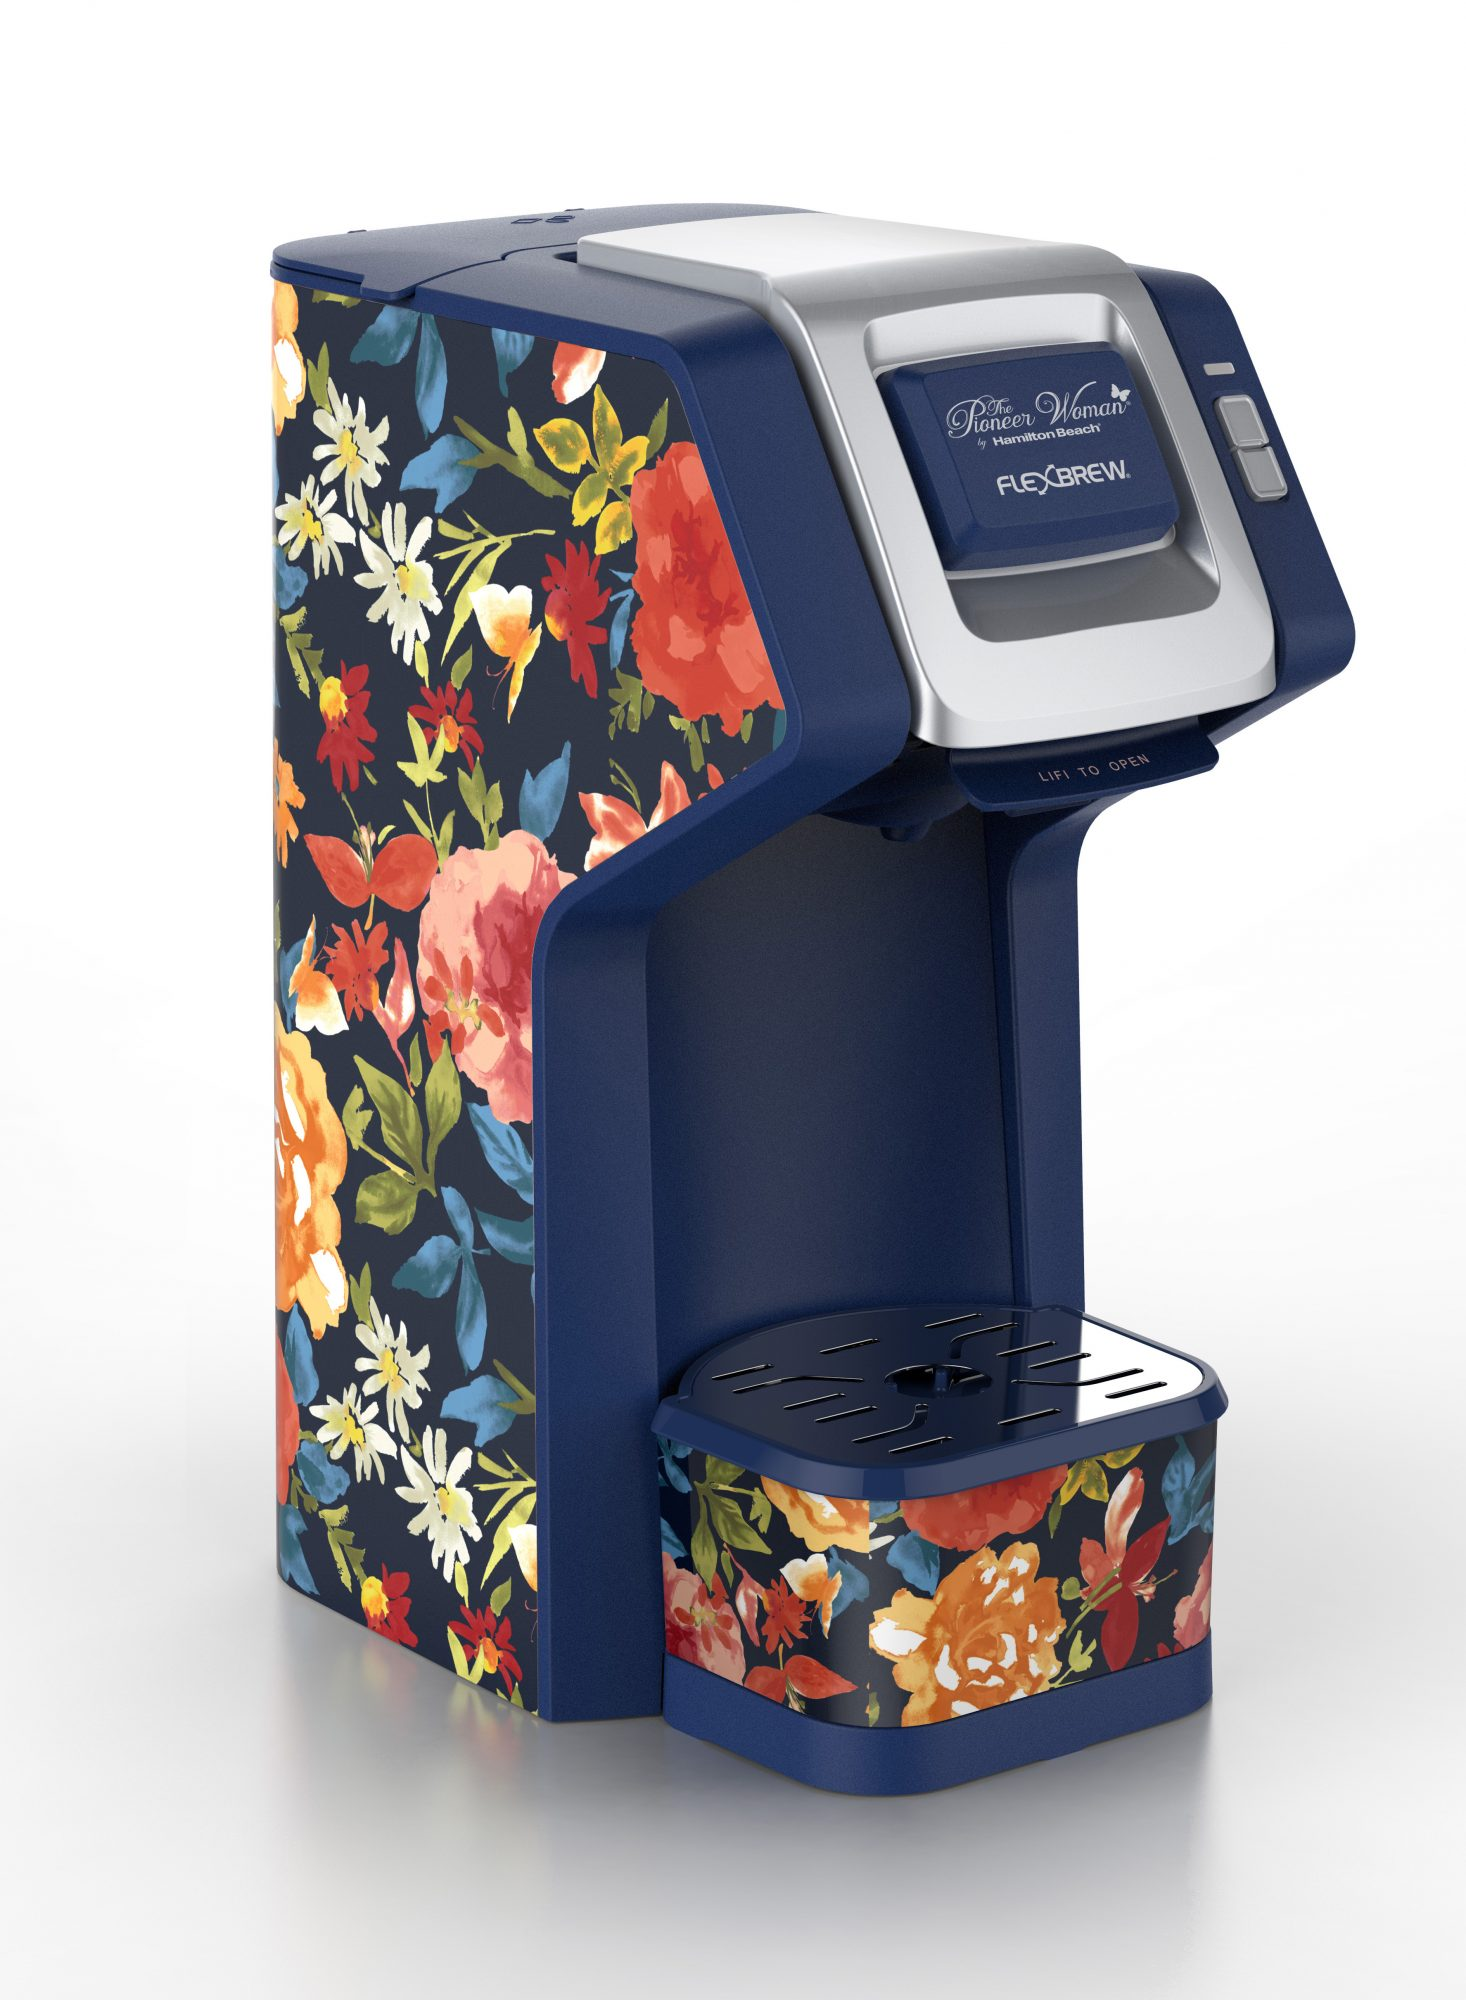 Pioneer Woman Fiona Floral FlexBrew Single-Serve Coffee Maker by Hamilton Beach